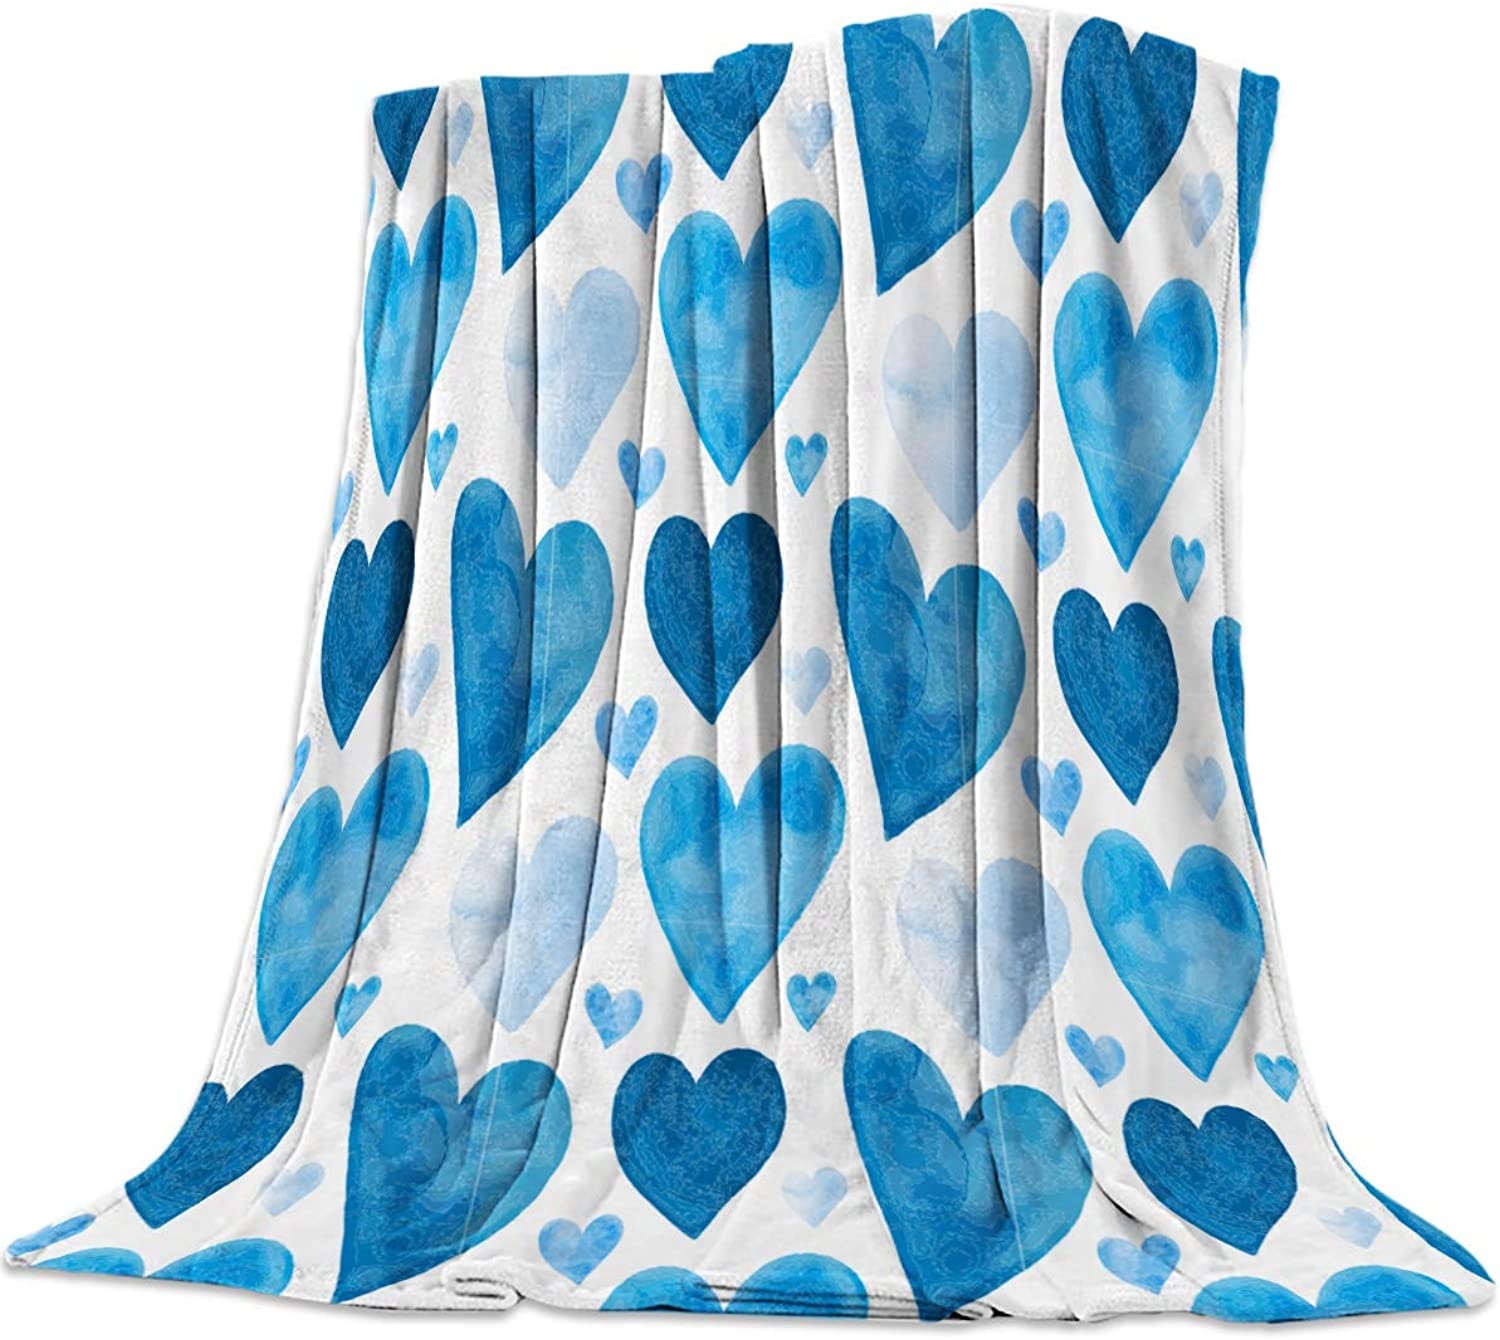 49x59 Inch Flannel Fleece Bed Blanket Soft ThrowBlankets for Girls Boys,bluee Shape of Heart Hand by Hand Heart Shape Valentine's Day,Cozy Lightweight Blankets for Bedroom Living Room Sofa Couch